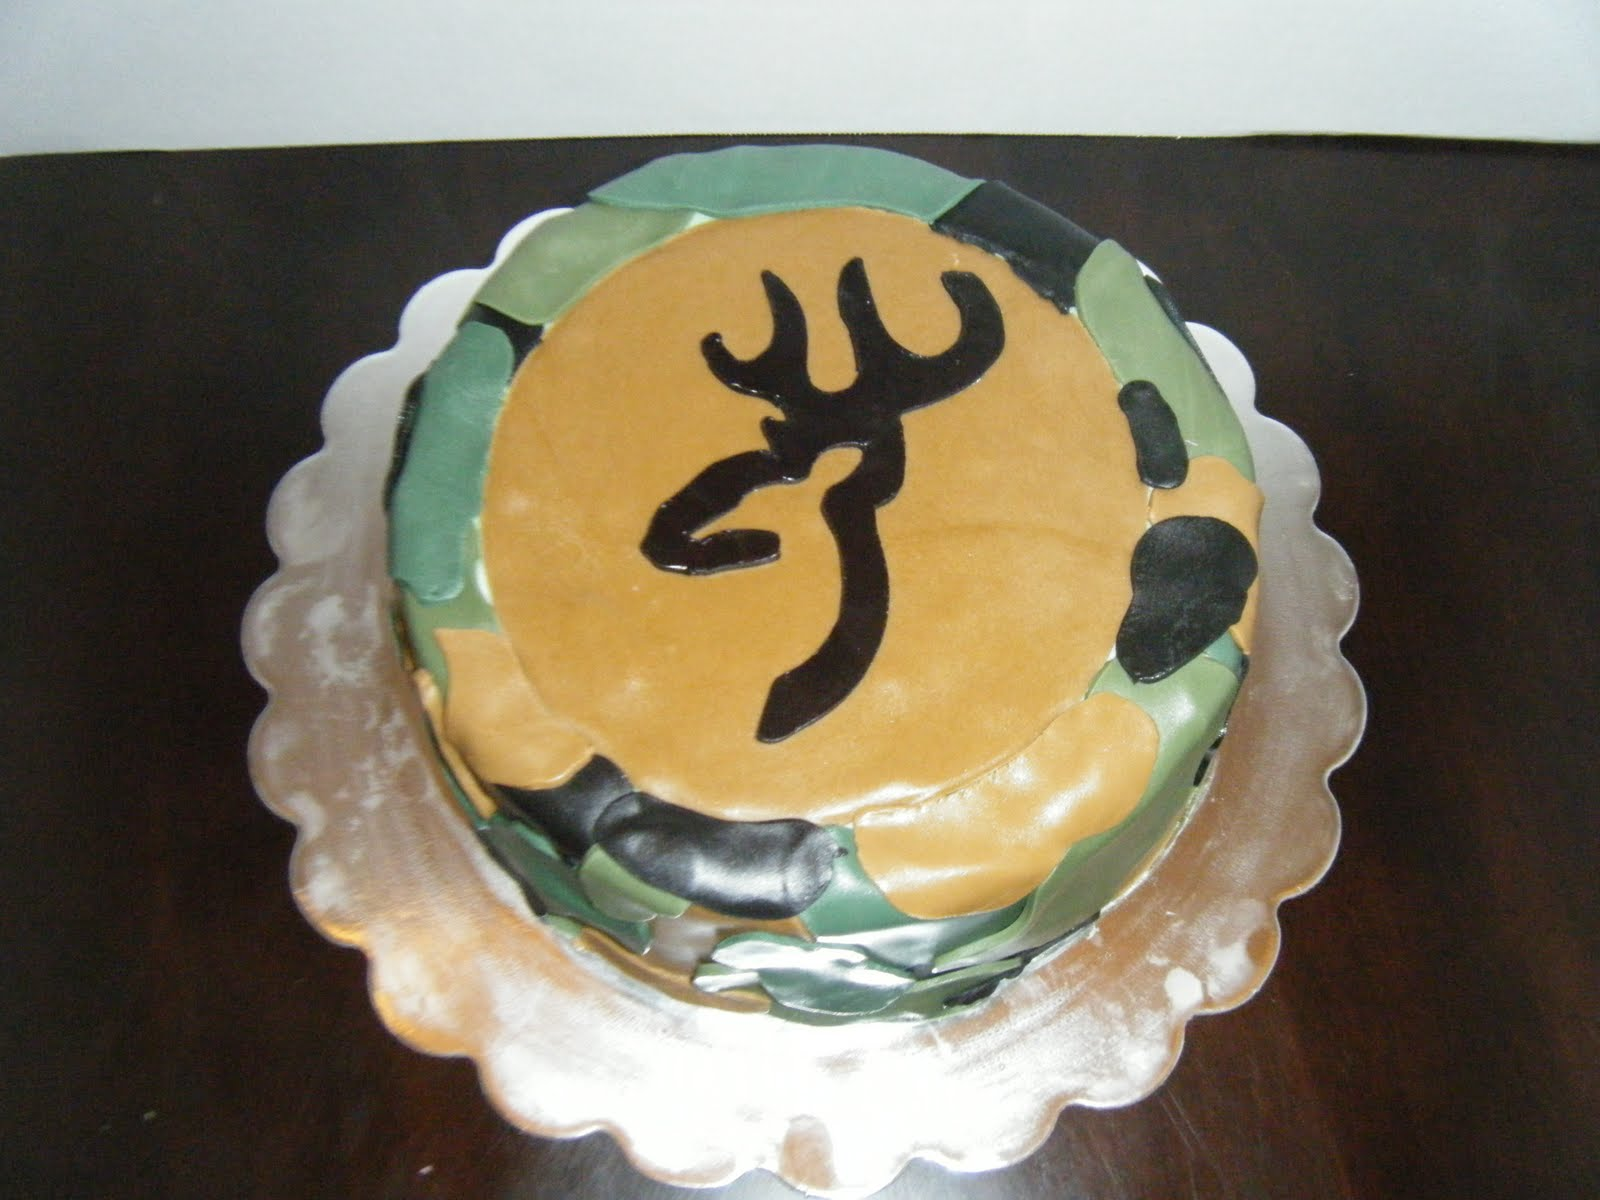 Browning Symbol Cakes submited images